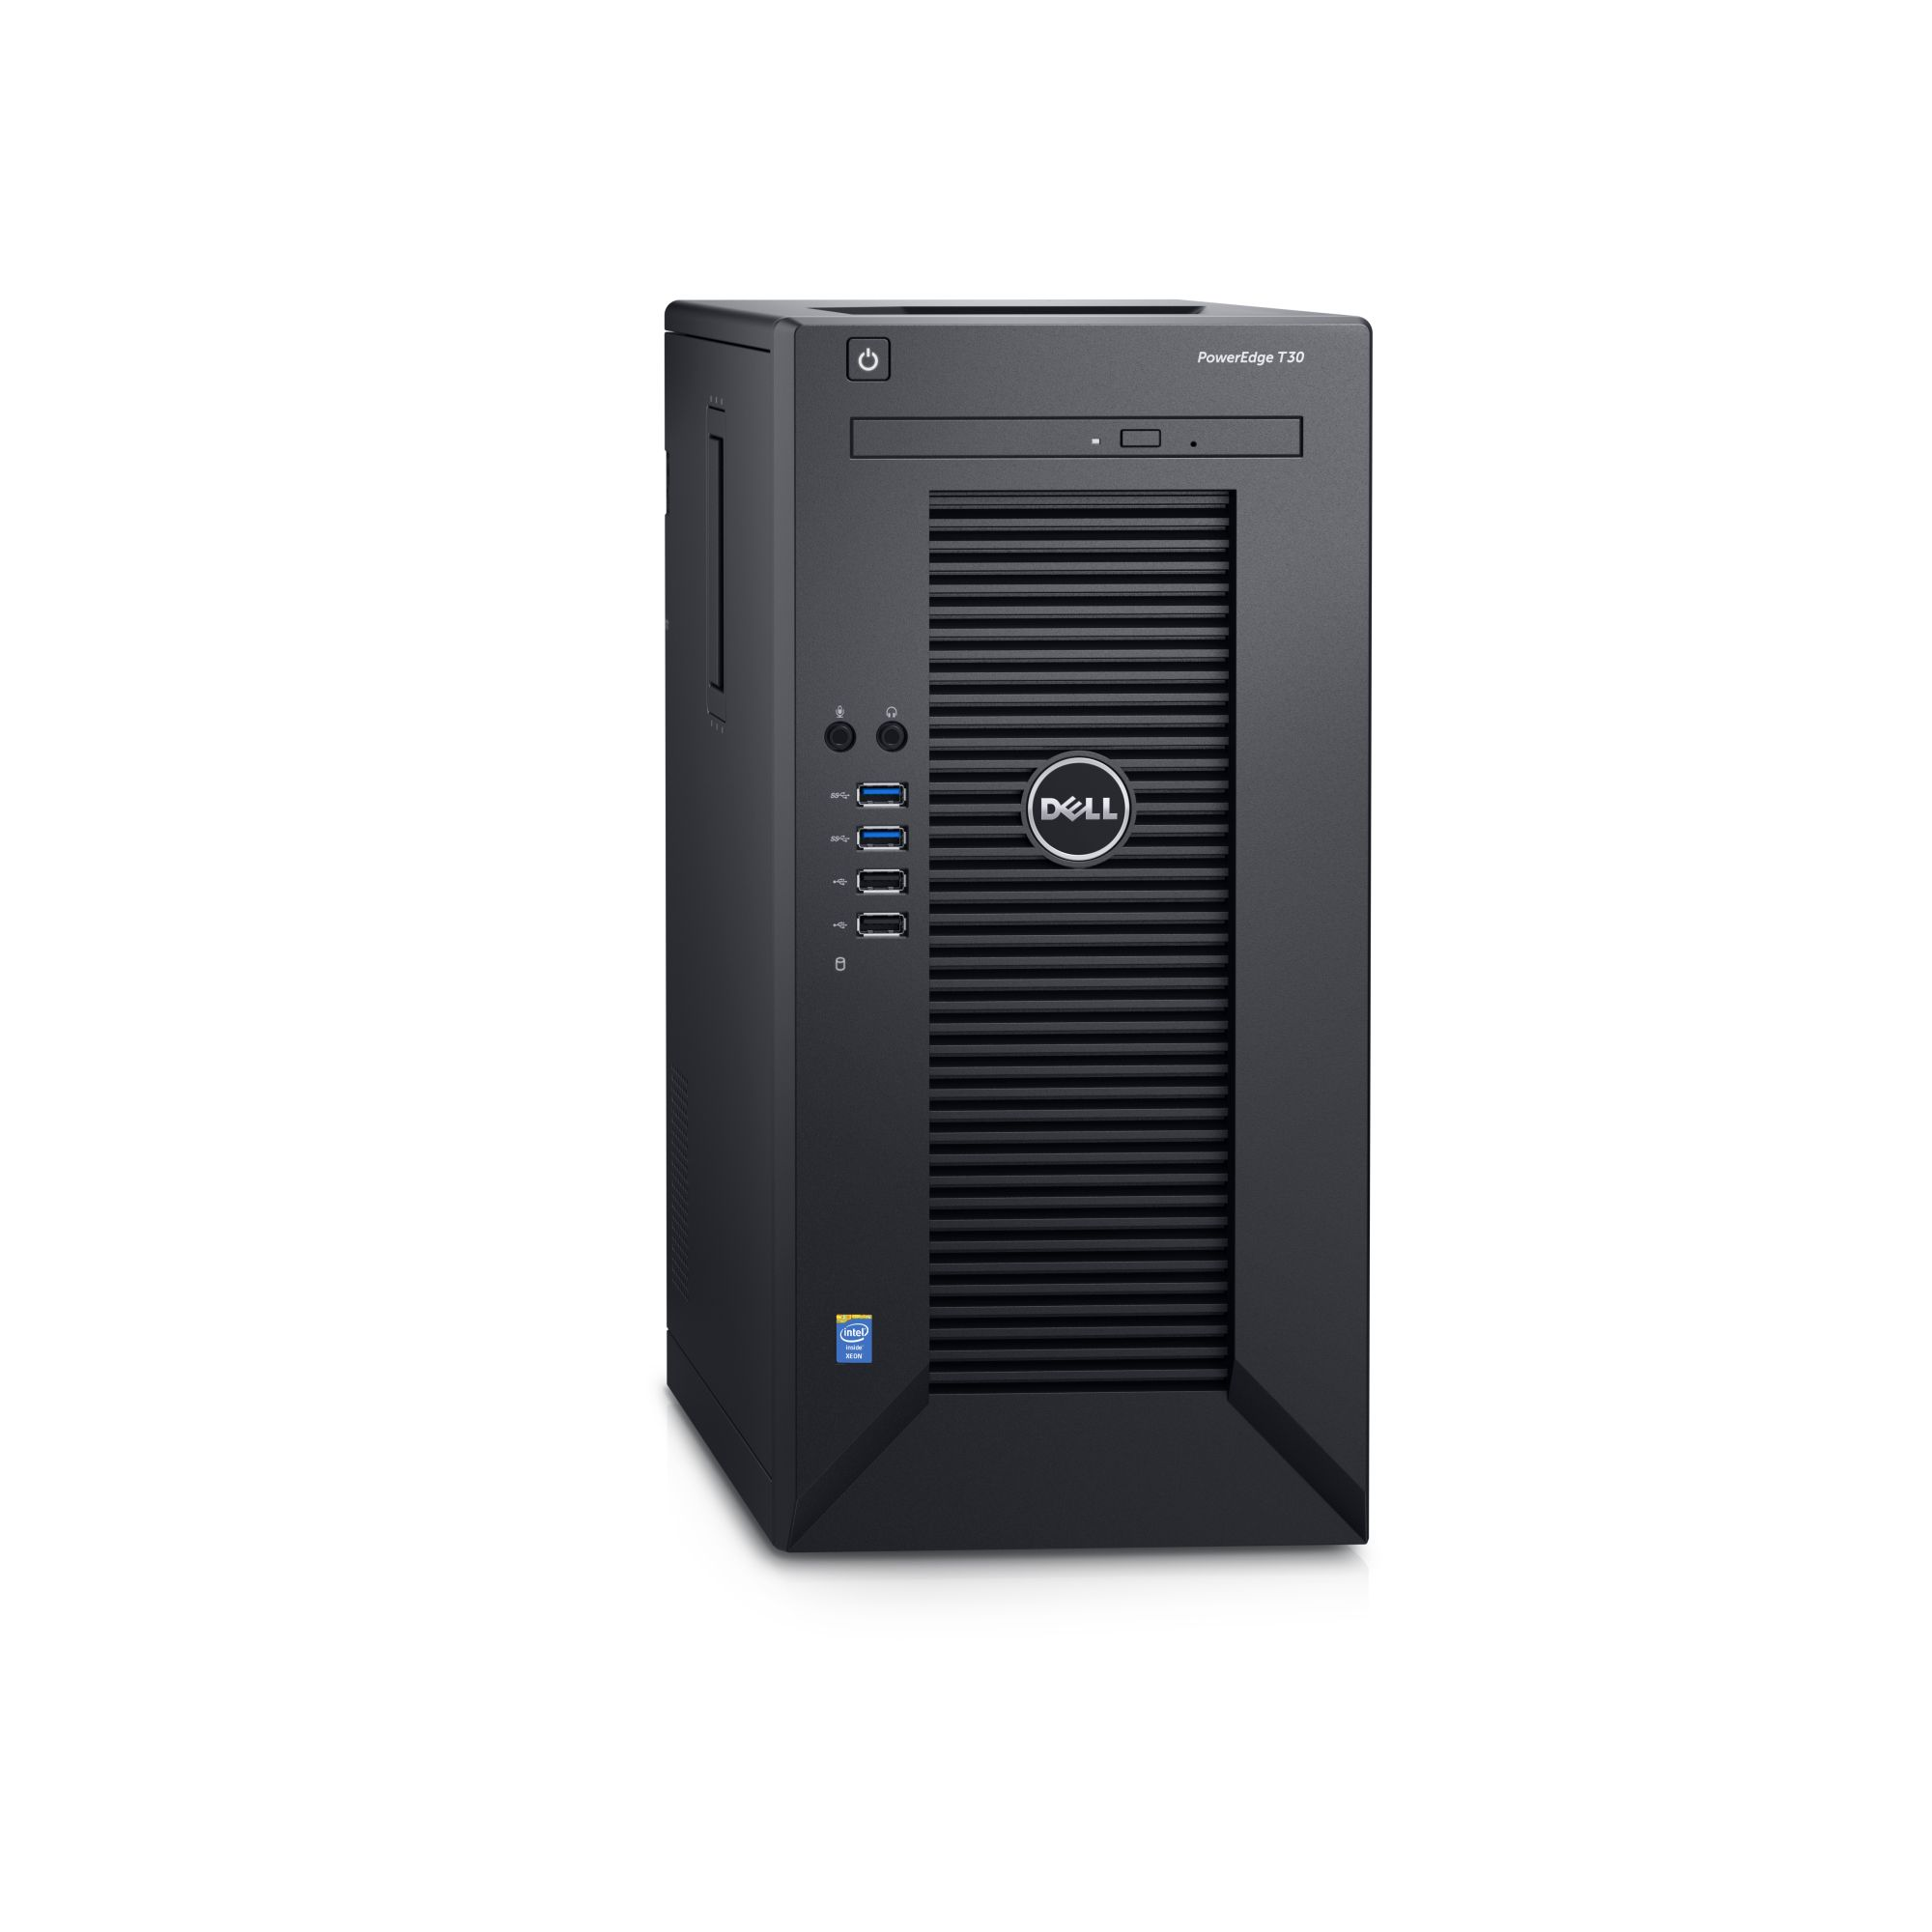 Dell PowerEdge T30 E3-1225 v5/8GB/4x1TB SATA/RAID 5/DVDRW/1xGLAN/290W/3RNBD/Černý